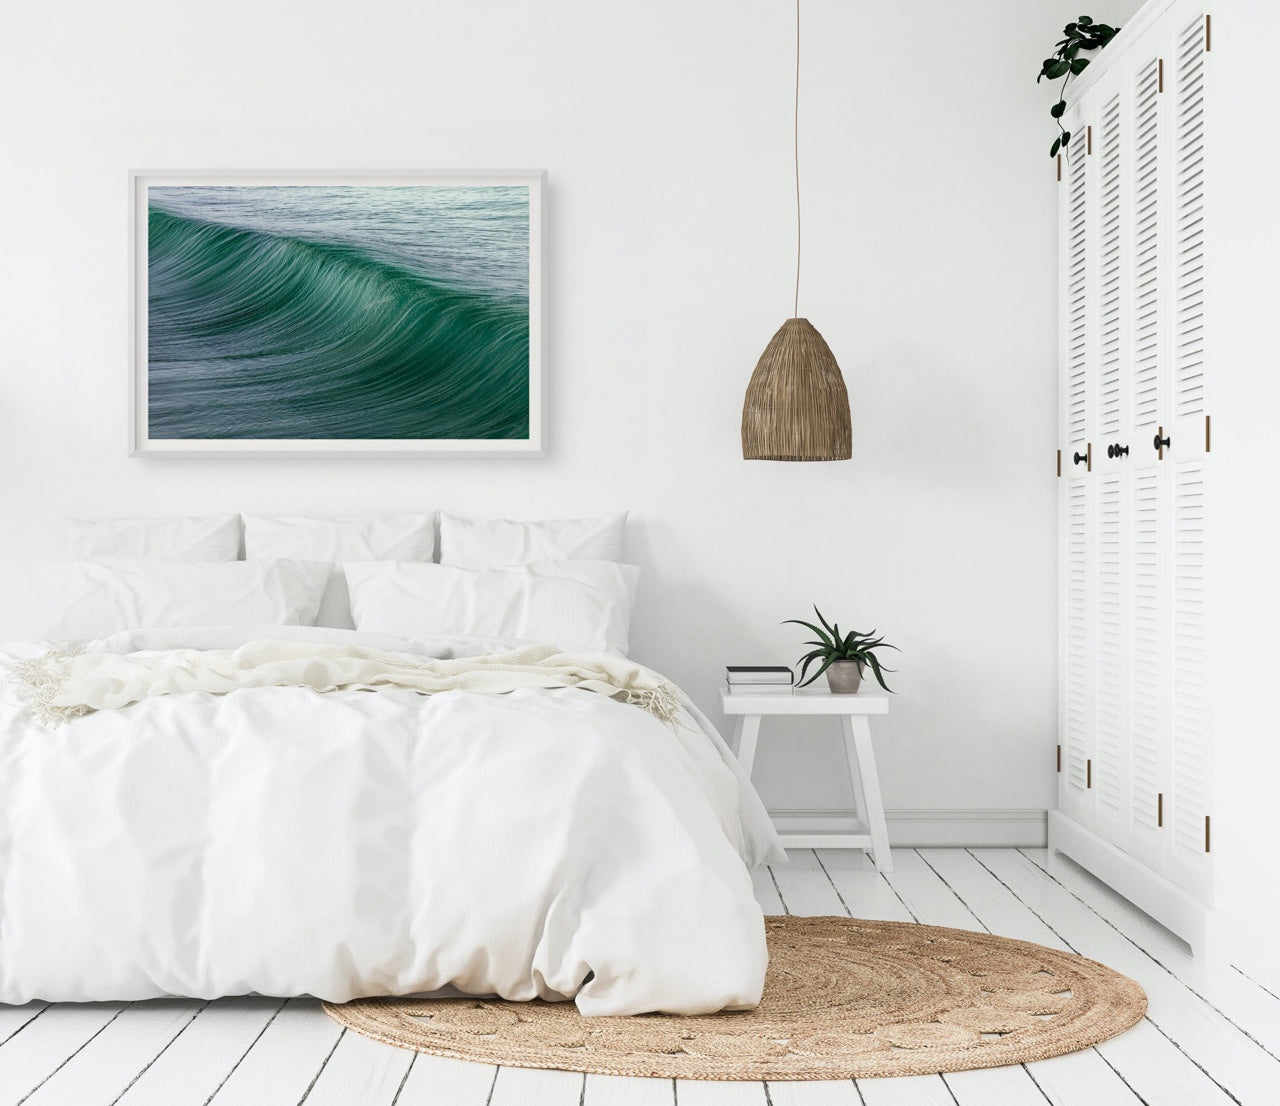 Abstract Ocean Wall Art in Bedroom